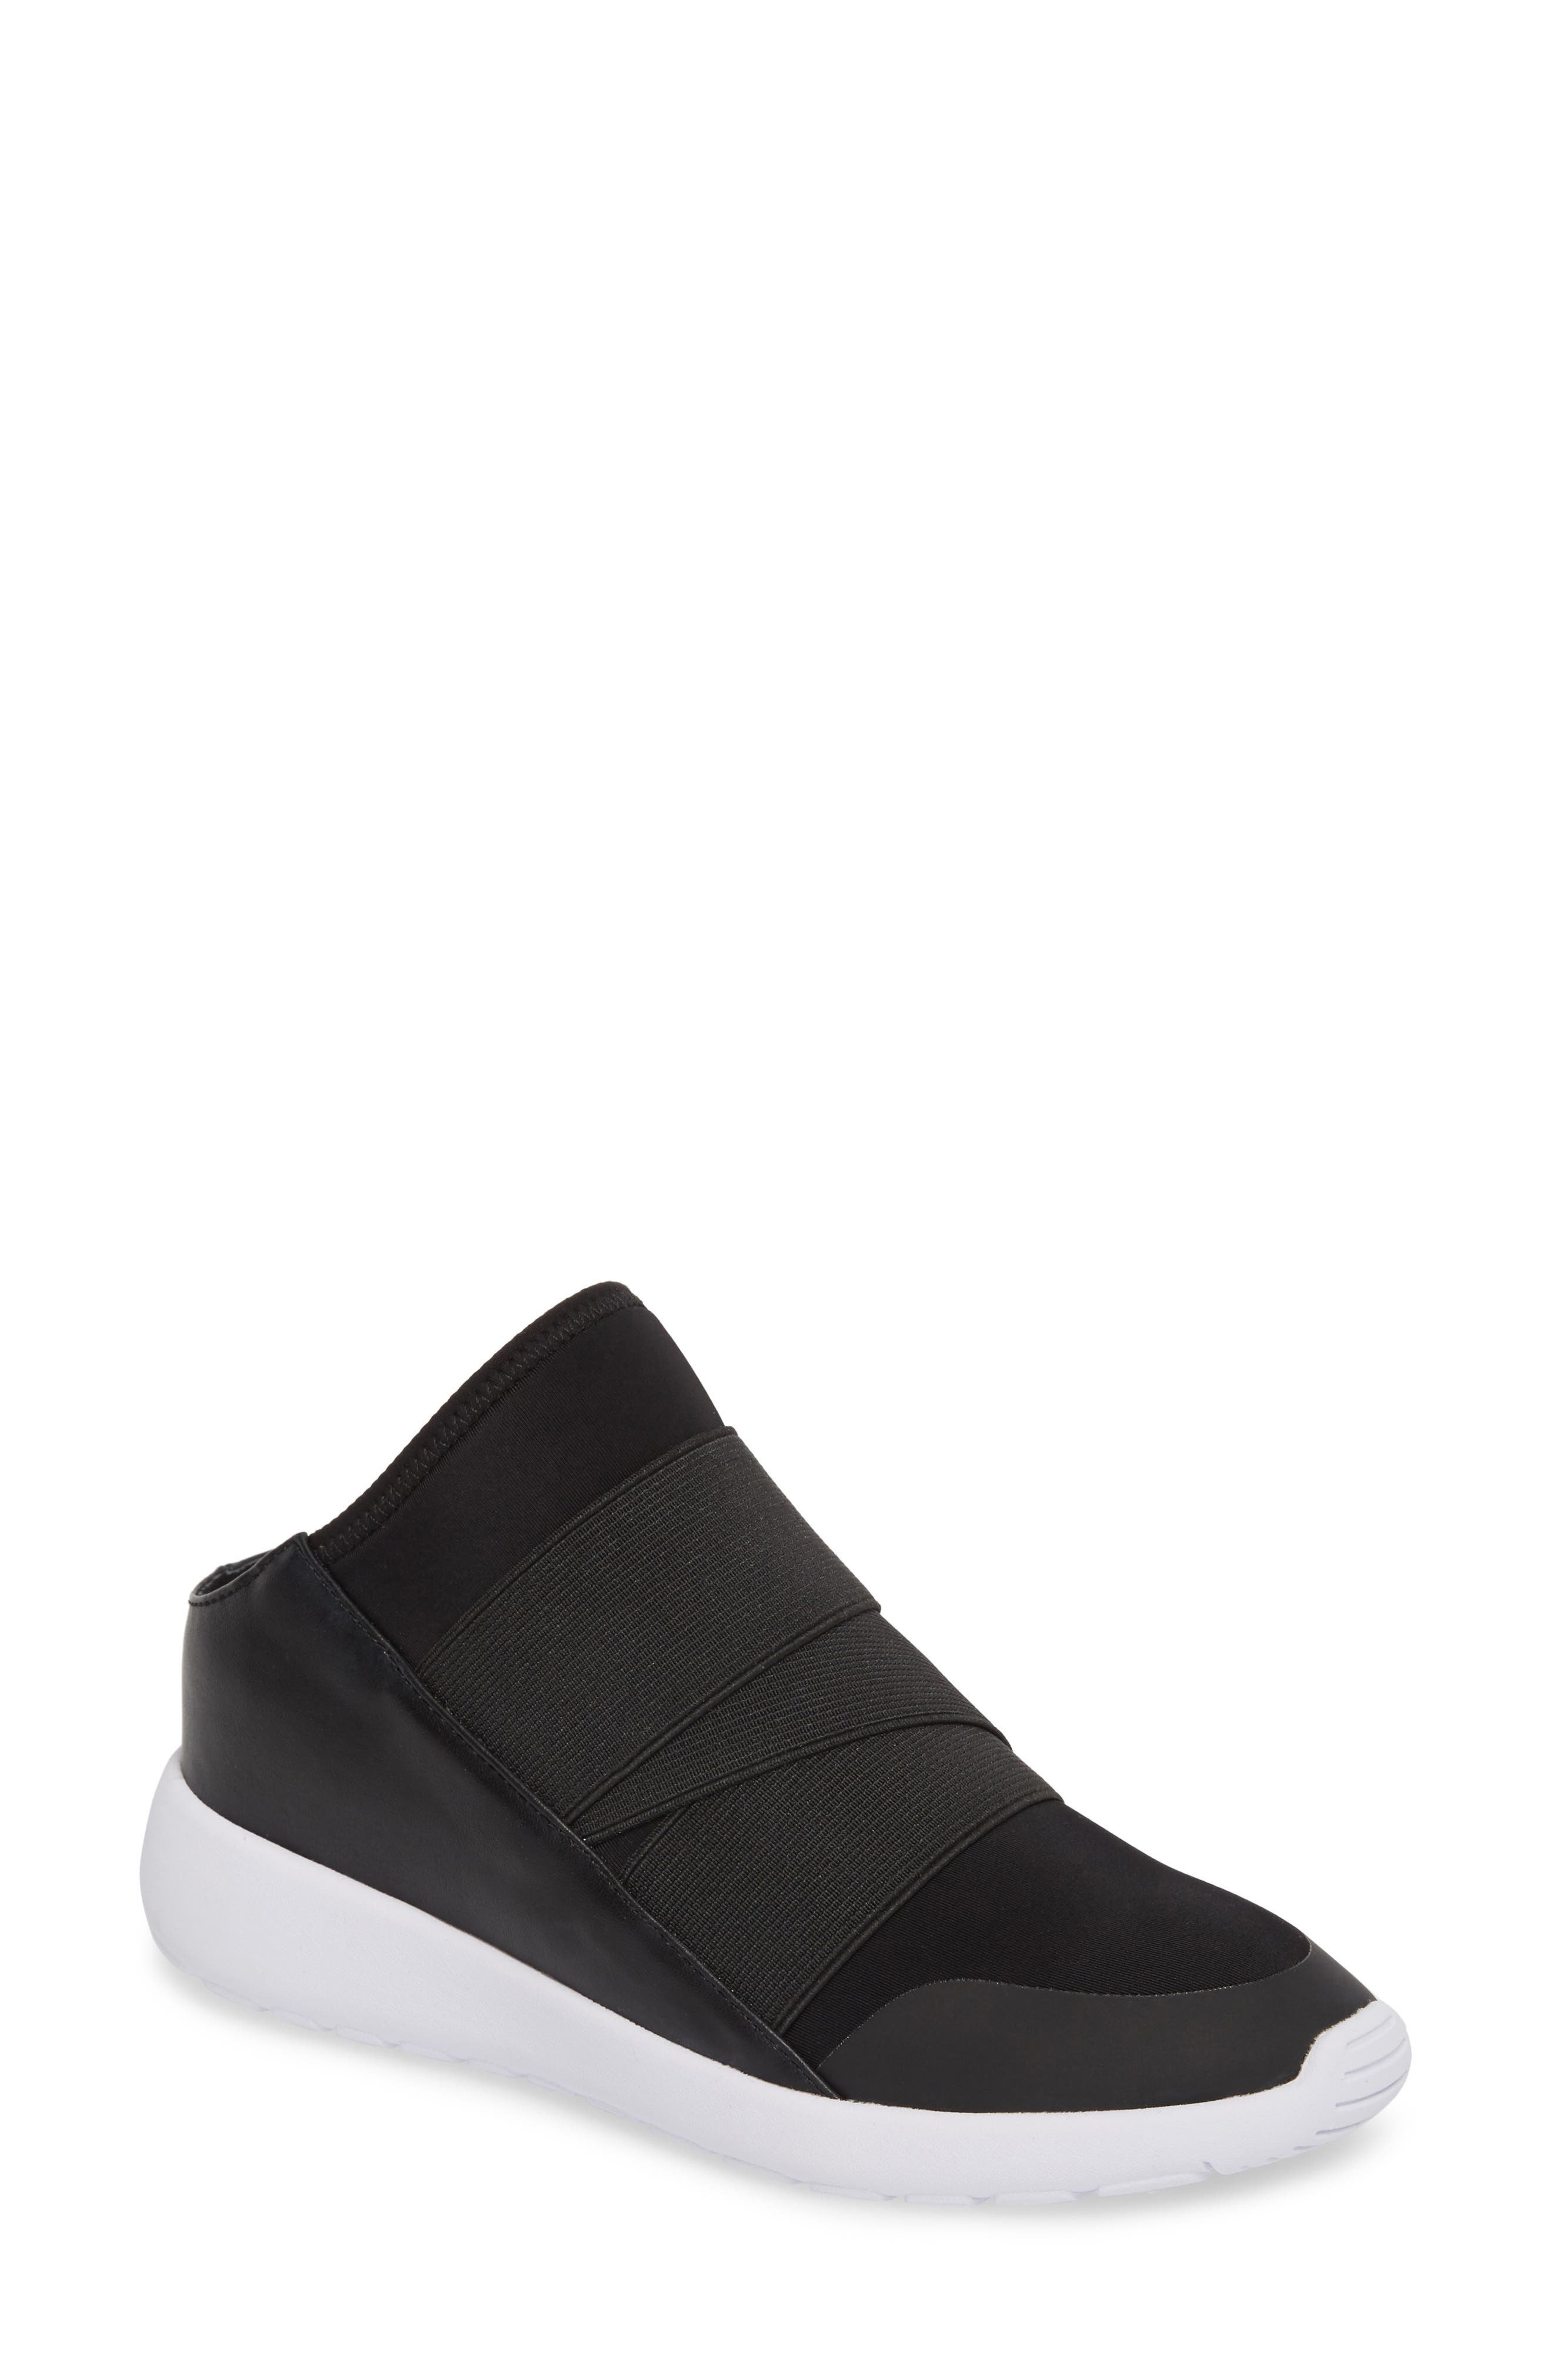 Vine Slip-On Sneaker,                             Main thumbnail 1, color,                             001